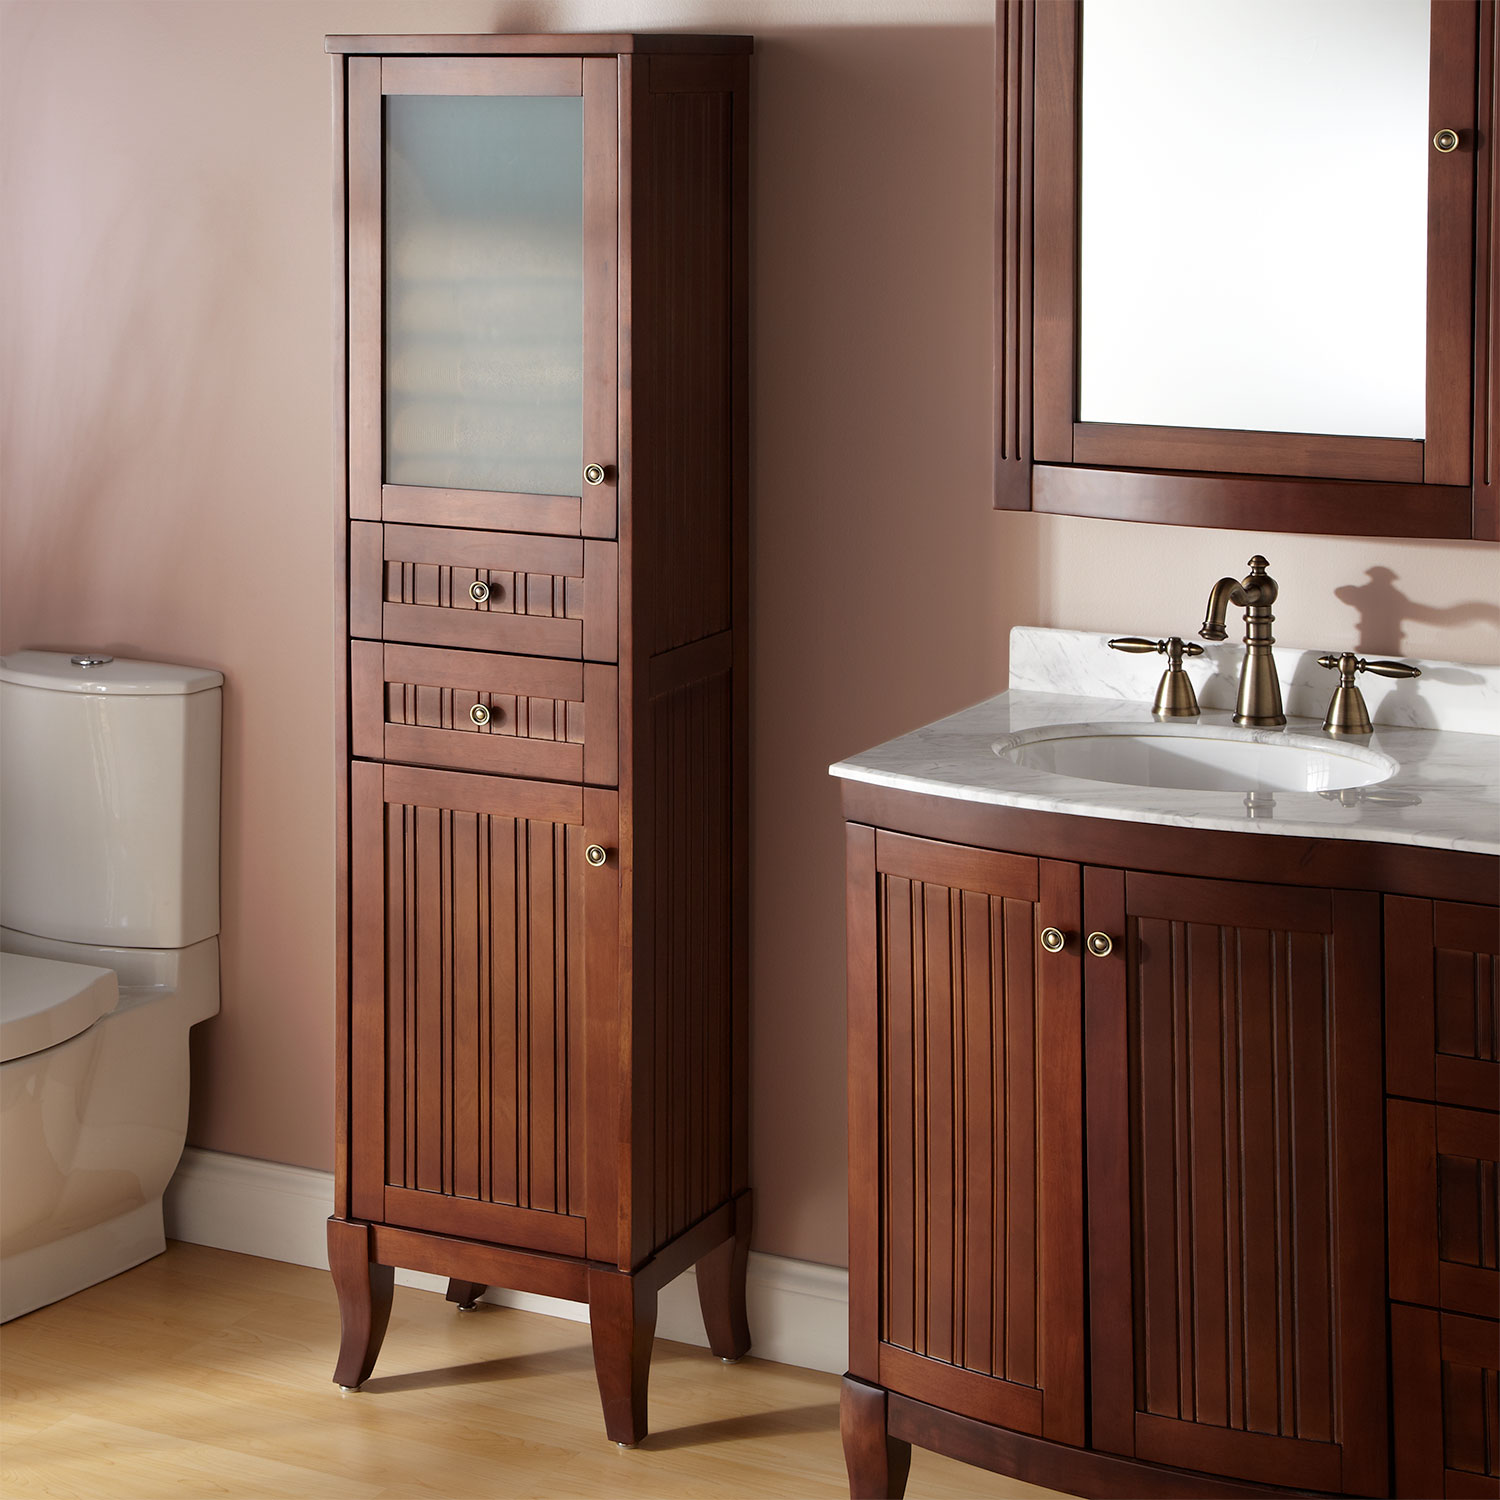 Bathroom Storage - Bathroom Vanity - quinju.com